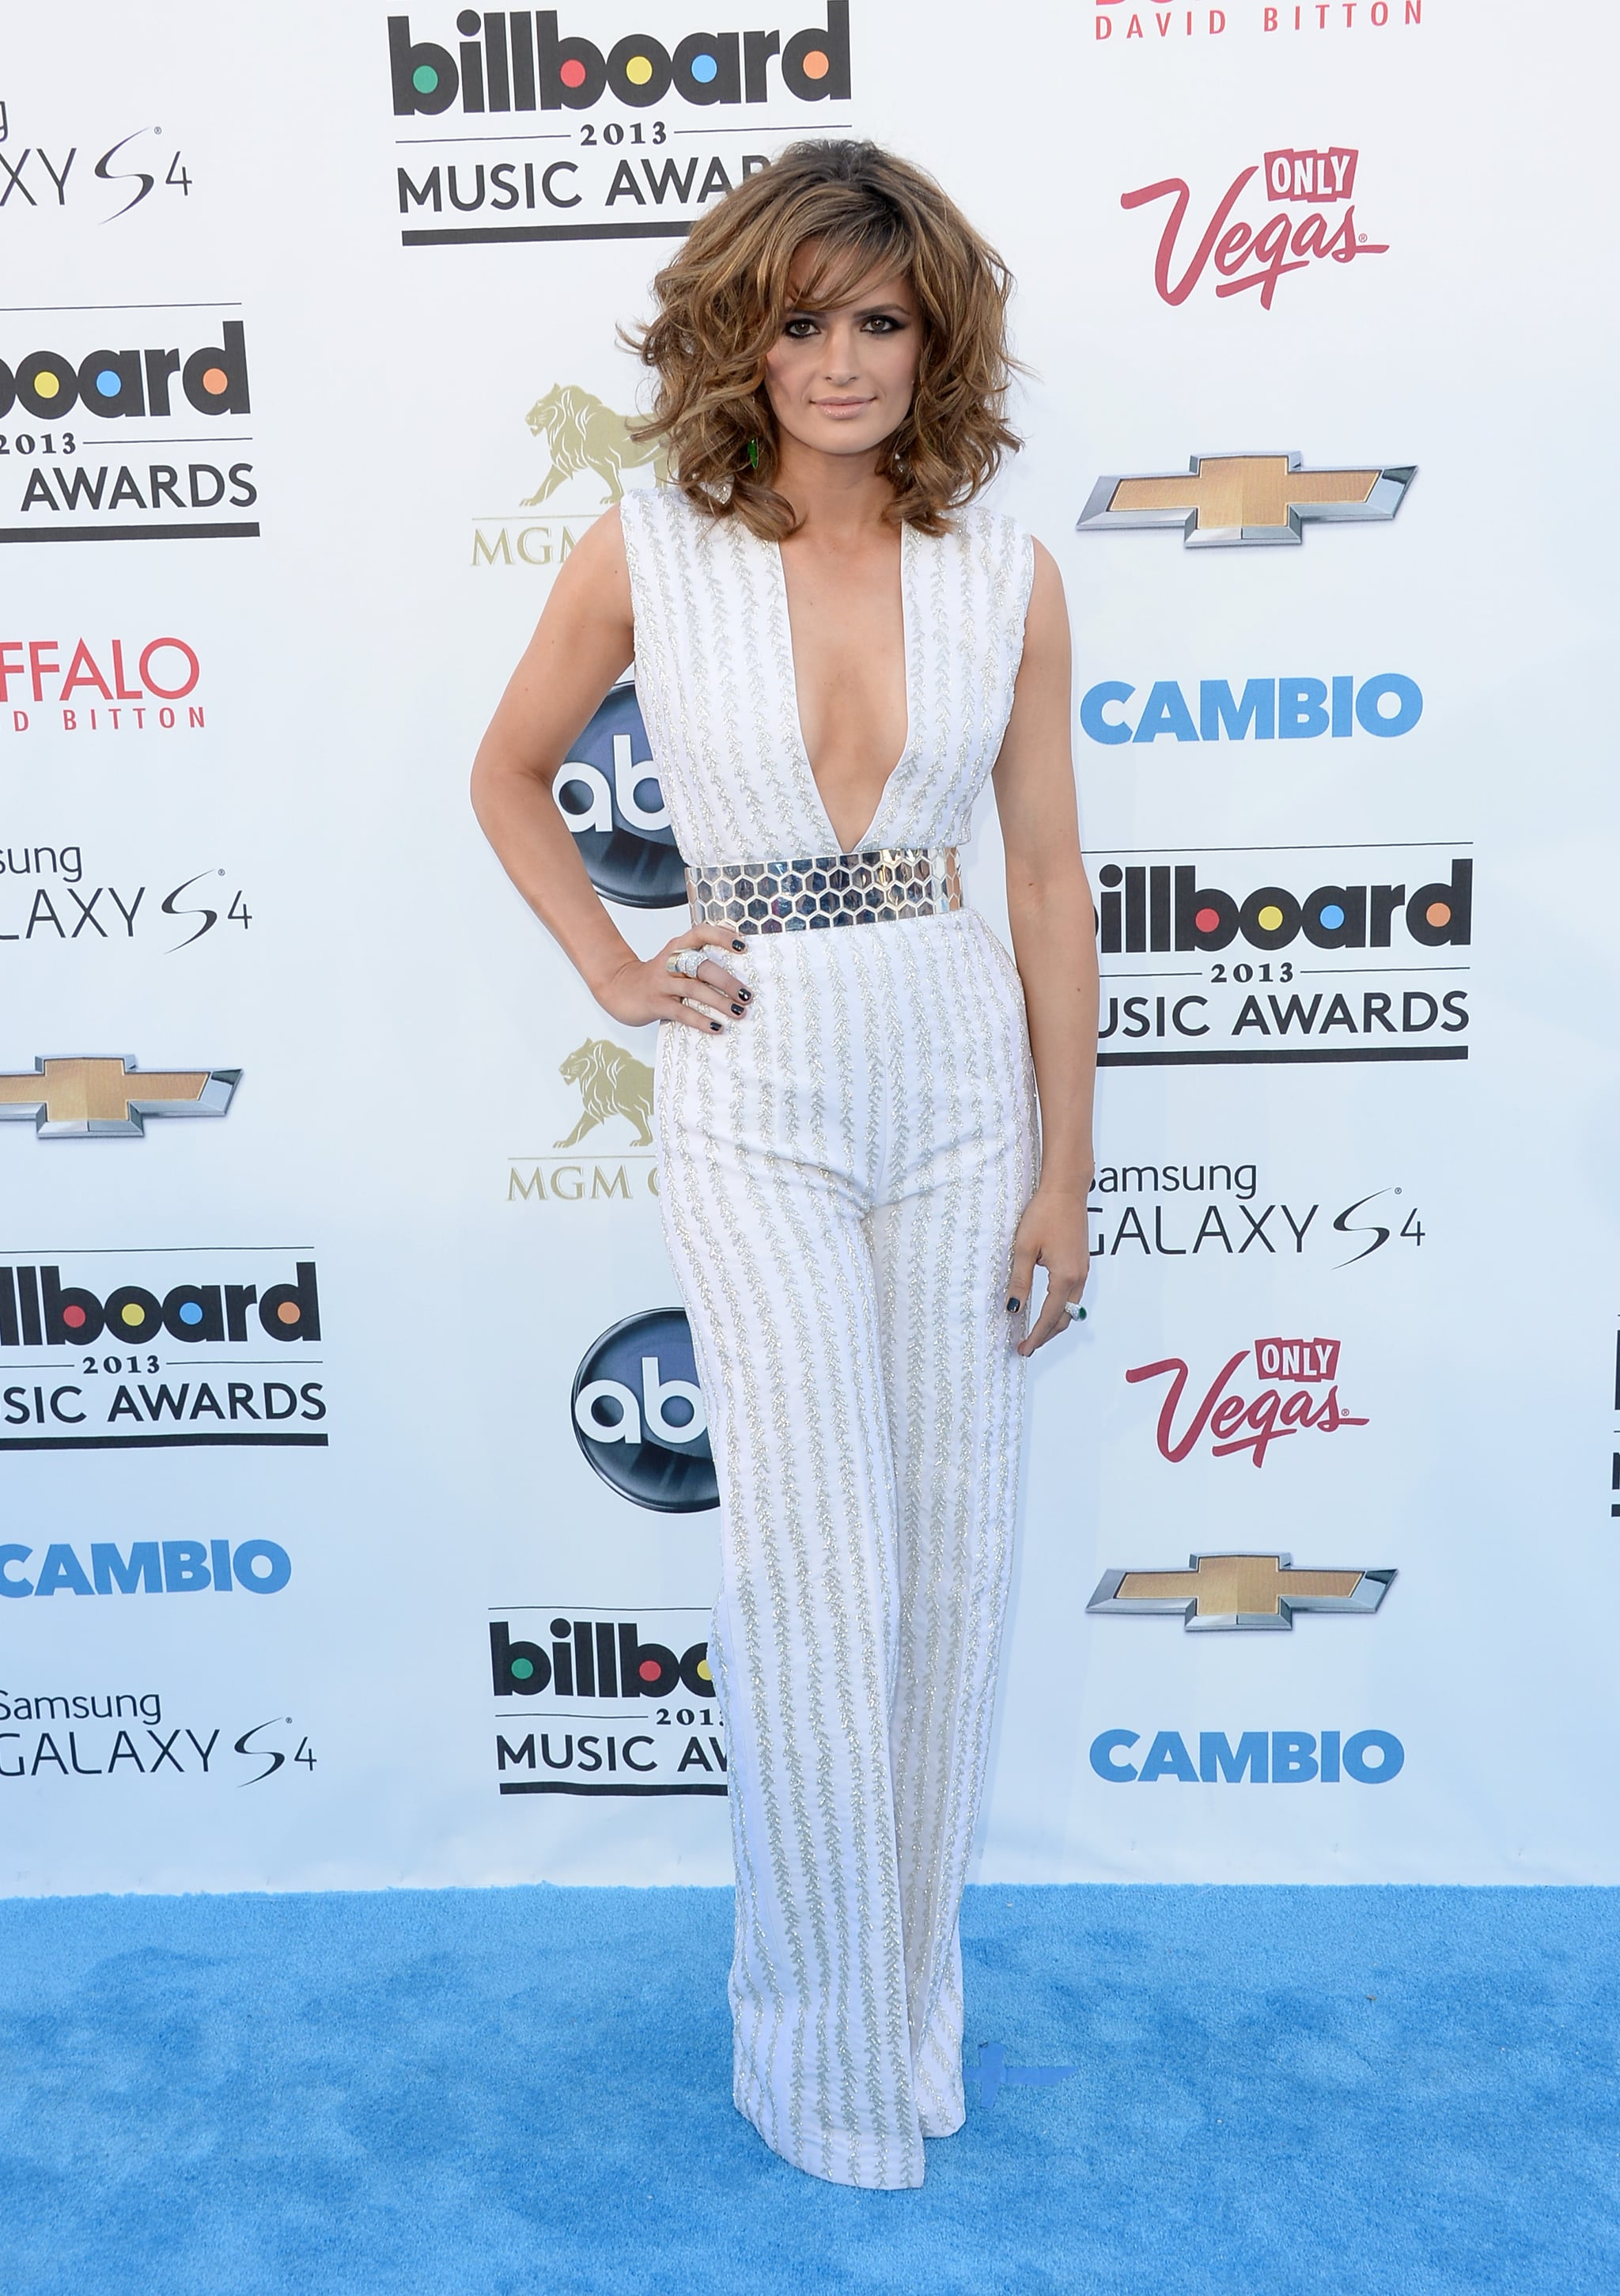 Stana Katic took a major plunge in a white striped jumpsuit, complete with a silver metallic belt.